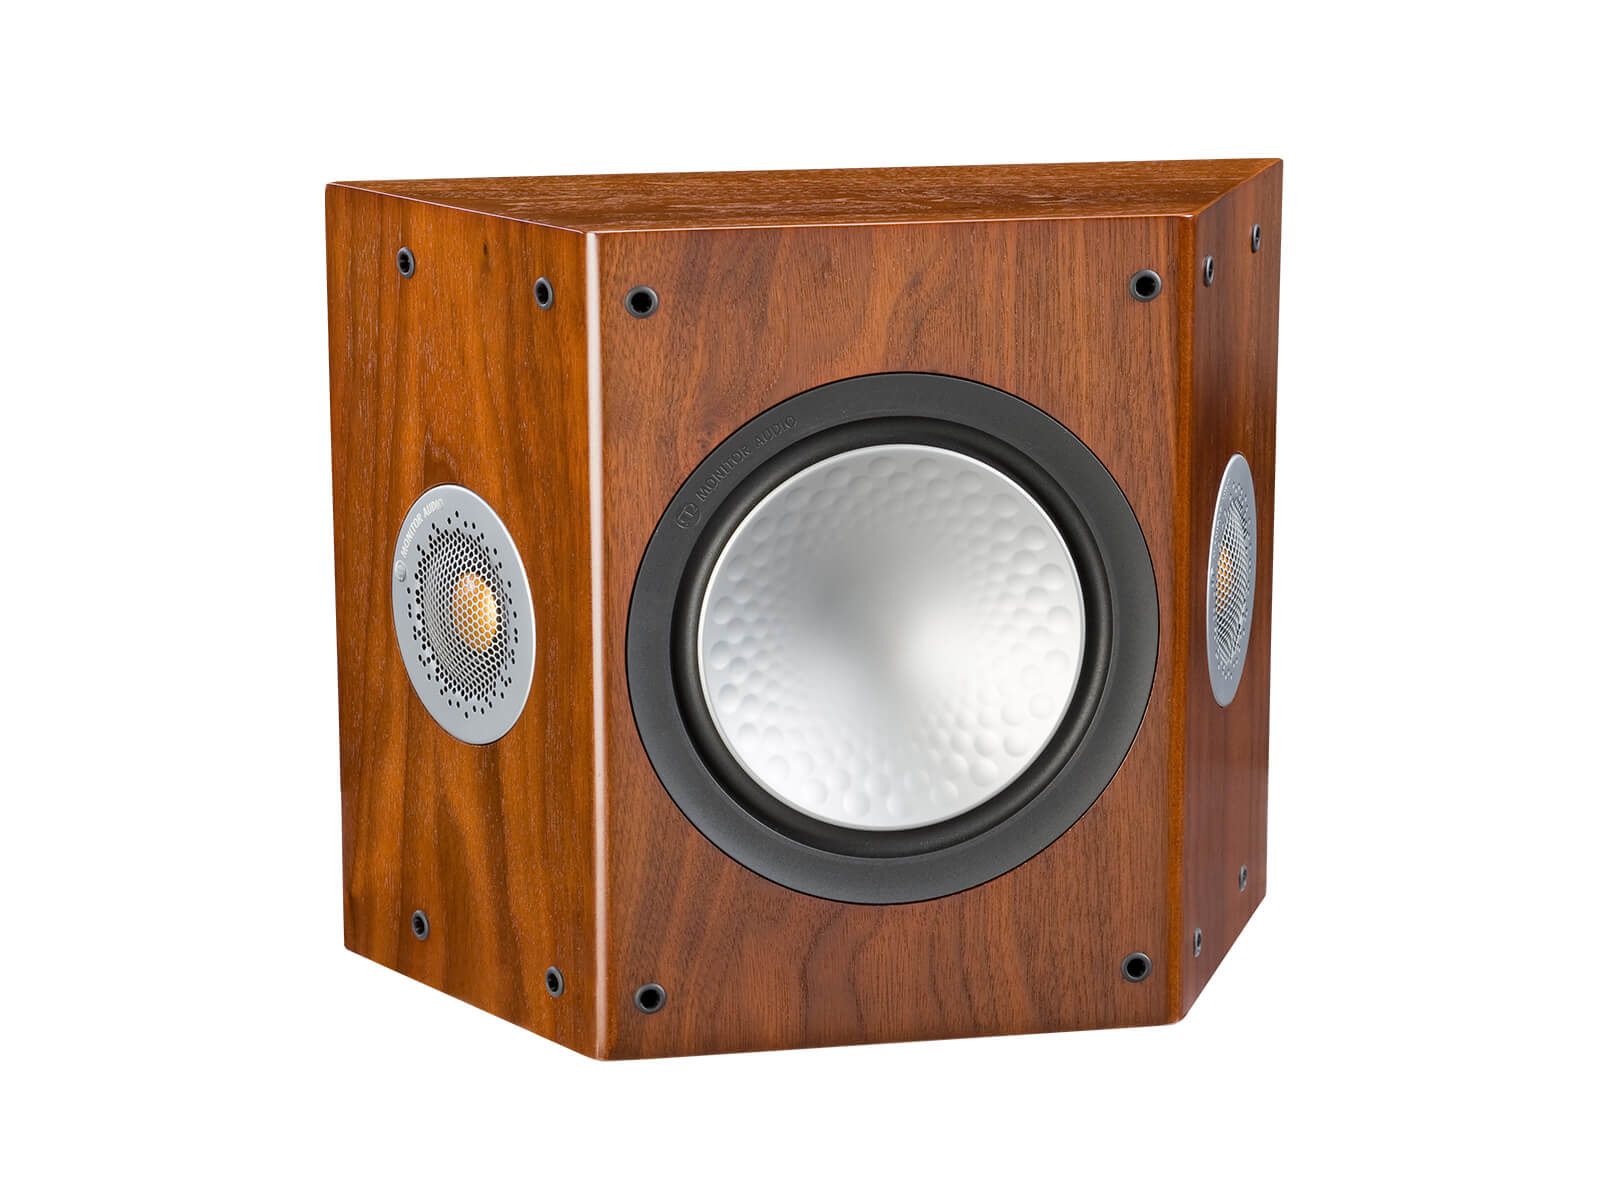 Silver FX, grille-less surround speakers, with a walnut finish.